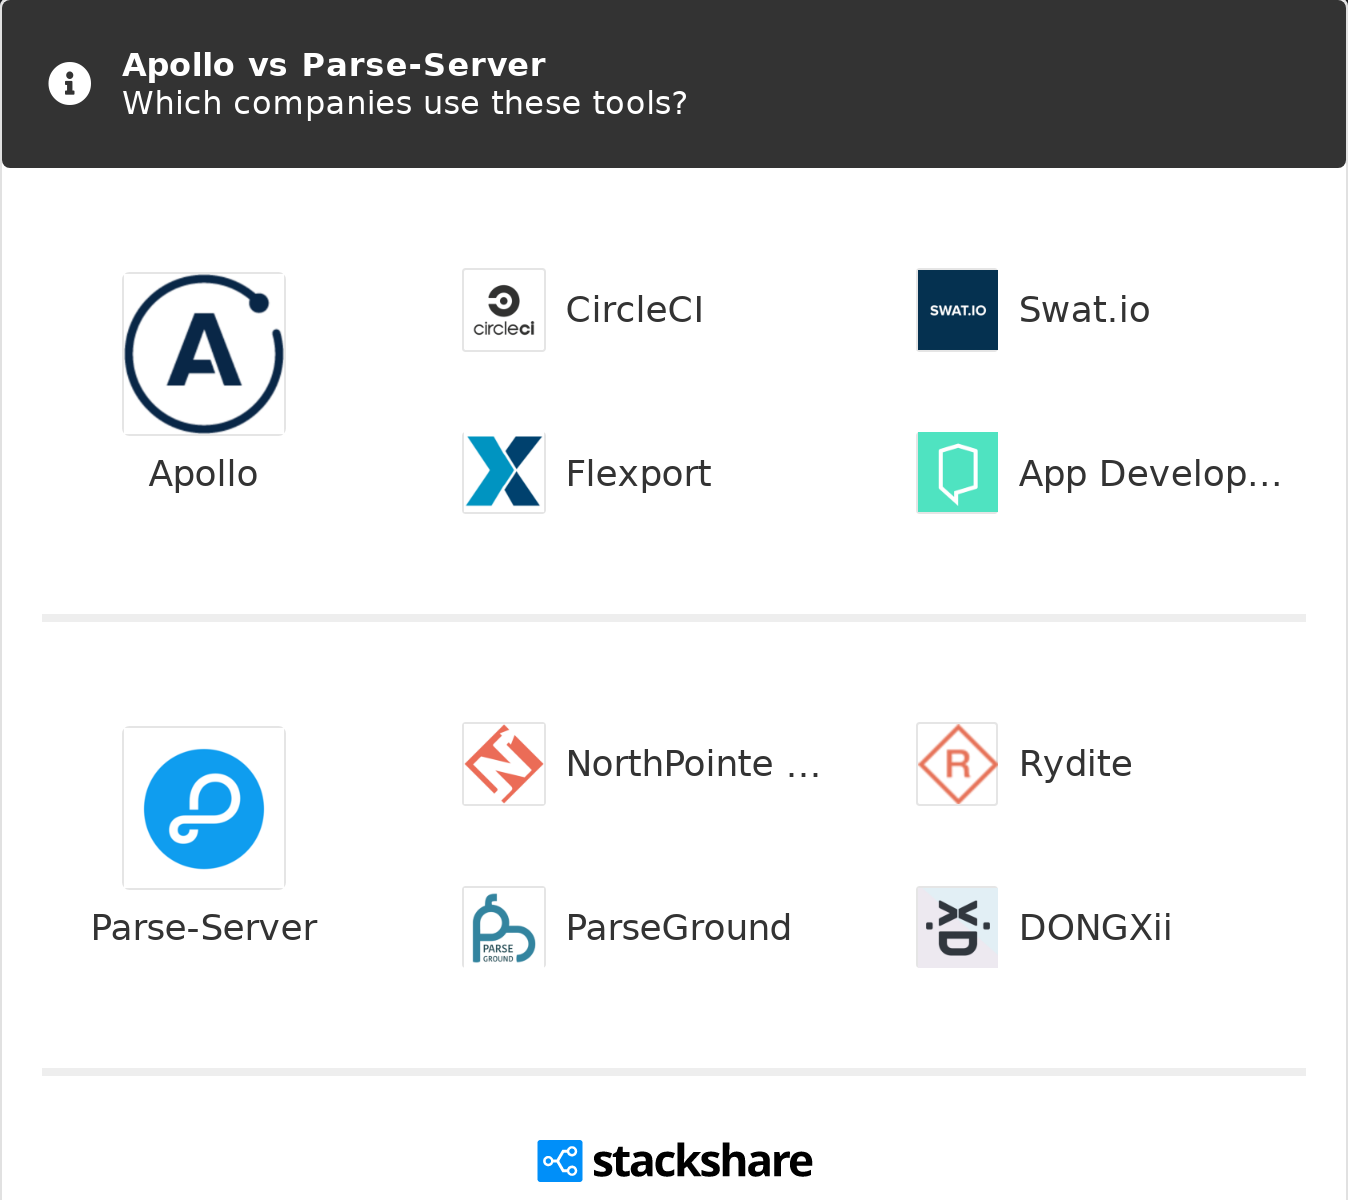 Apollo vs Parse-Server | What are the differences?